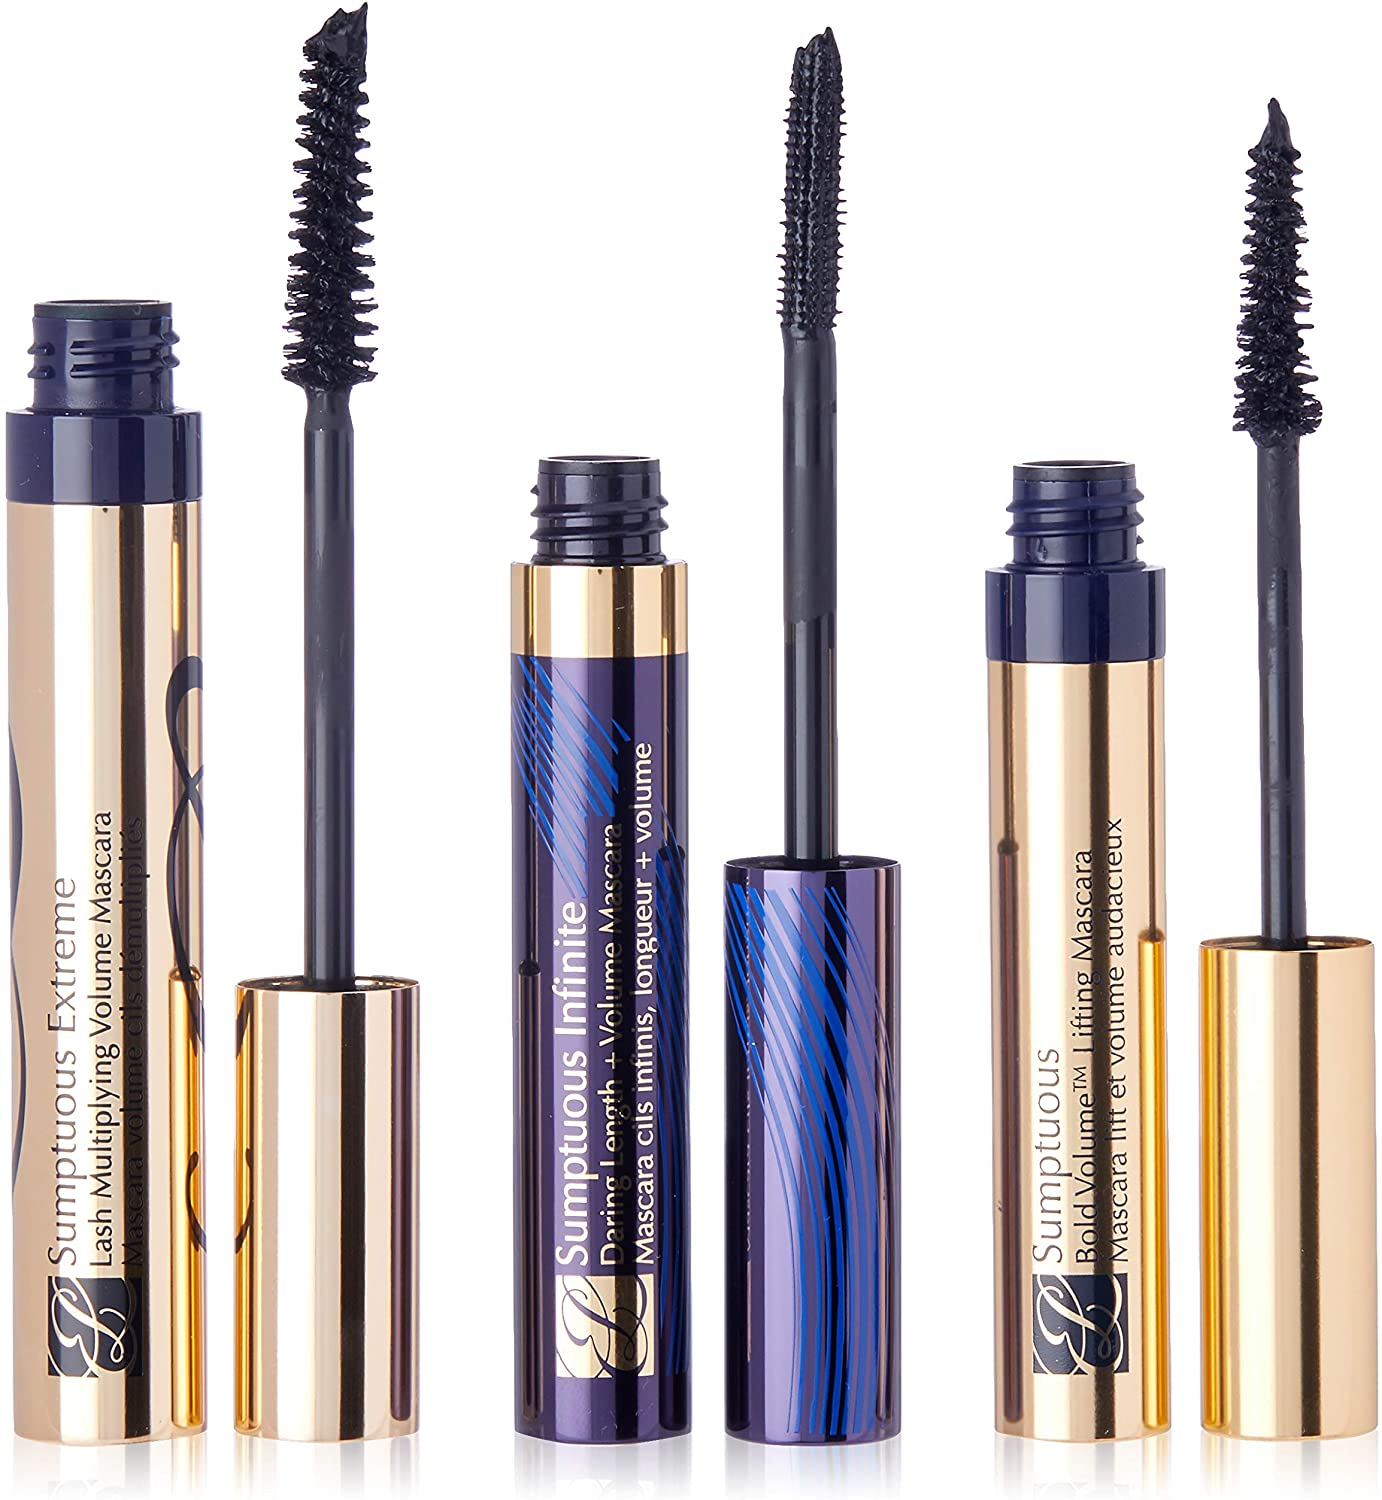 Estee Lauder Sumptuous Mascara Trio for Women, 3 Count